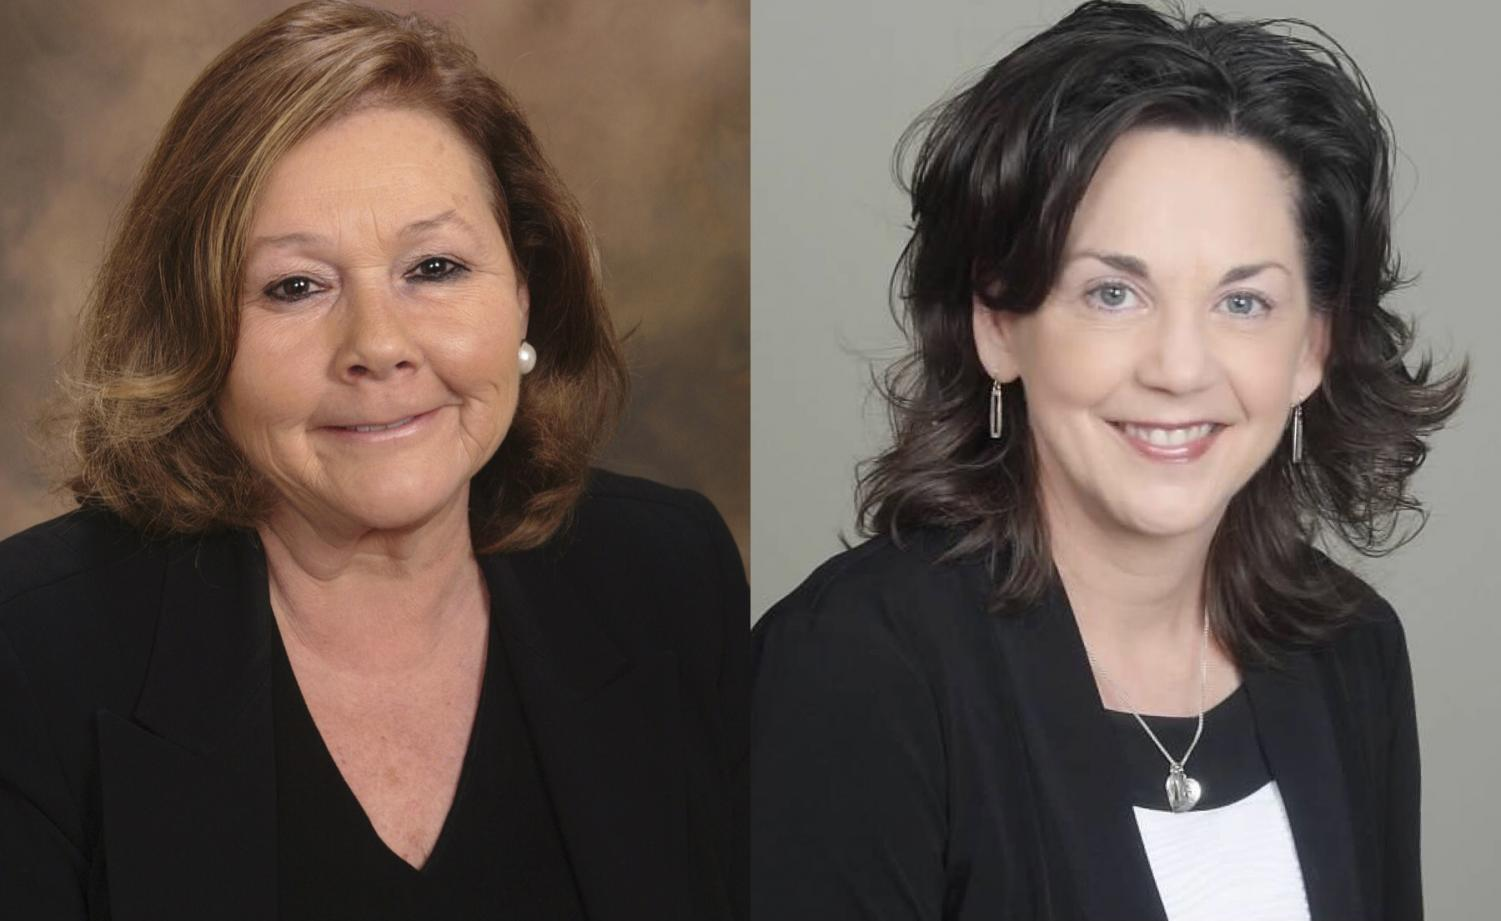 Outgoing superintendent Dr. Karen Orcutt (left) and incoming superintendent Dr. Kristi Flesher (right).